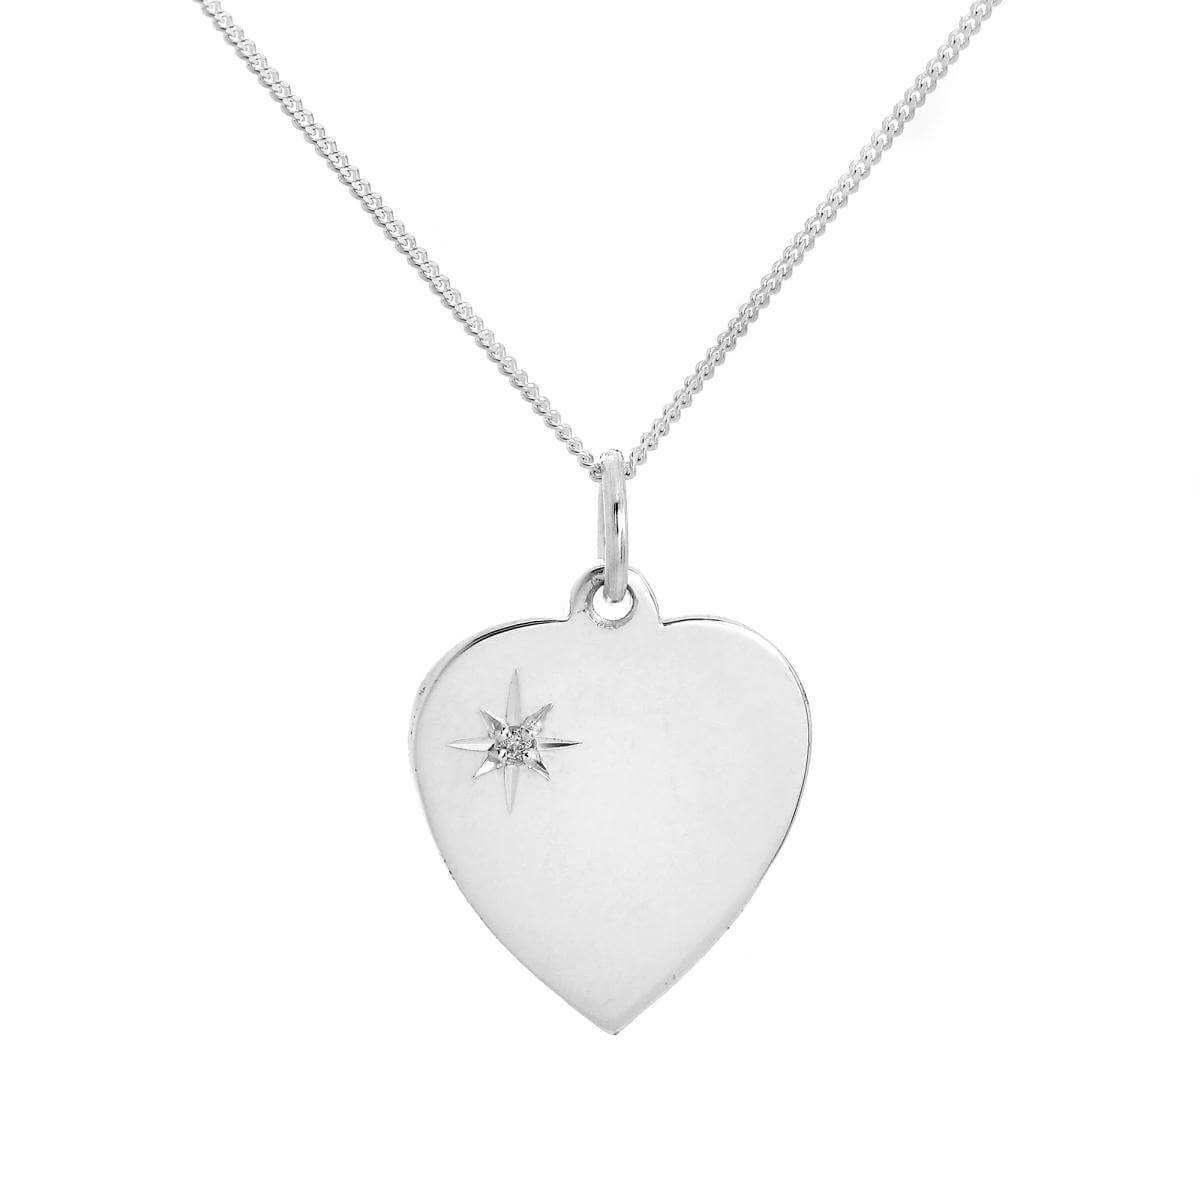 Sterling Silver & Diamond Engravable Heart Pendant on Chain